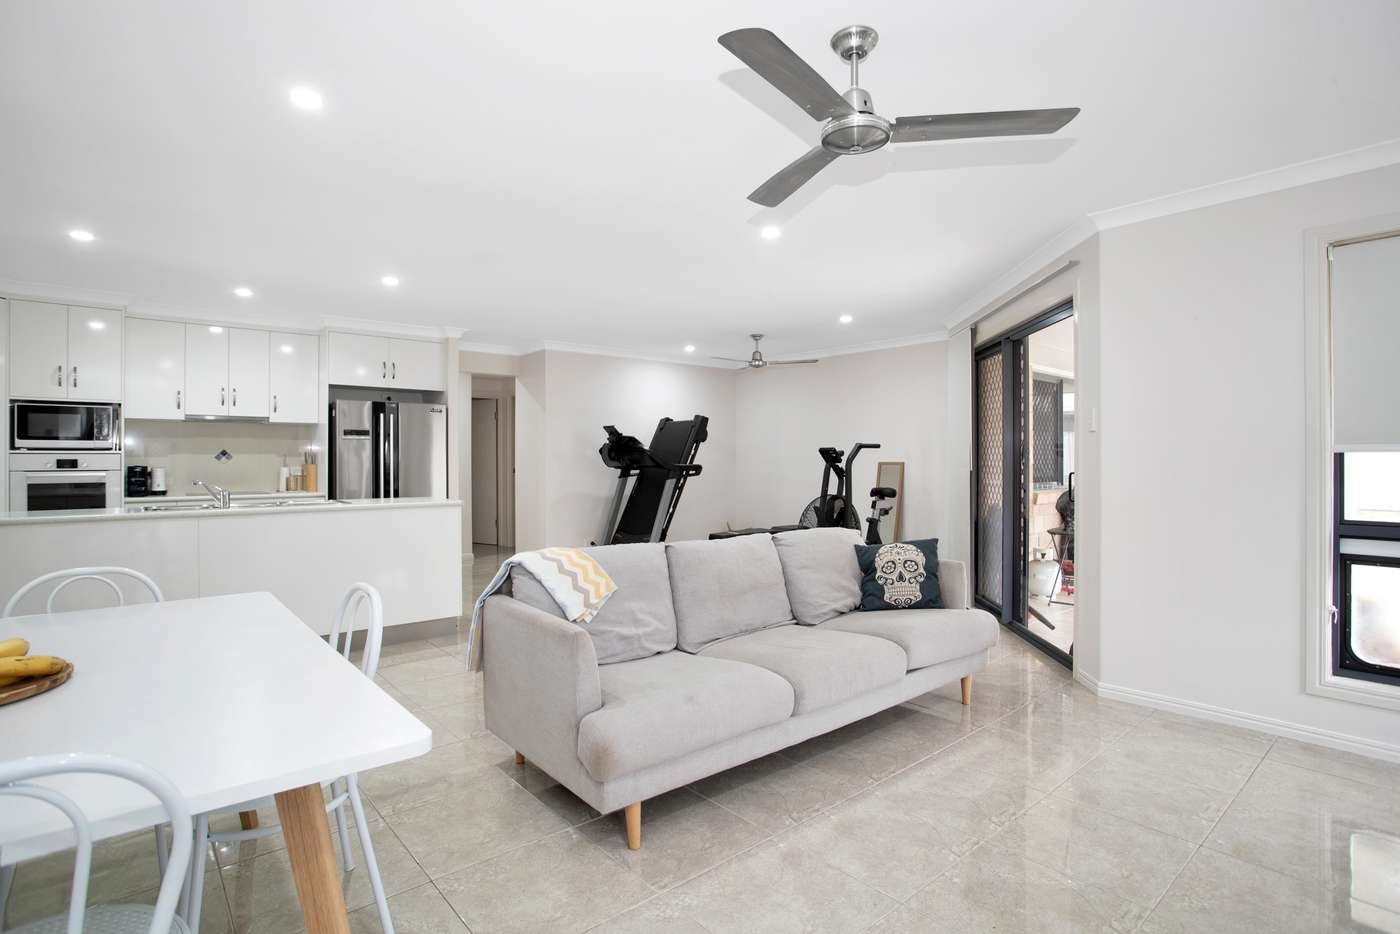 Sixth view of Homely house listing, 117 Oldmill Drive, Beaconsfield QLD 4740